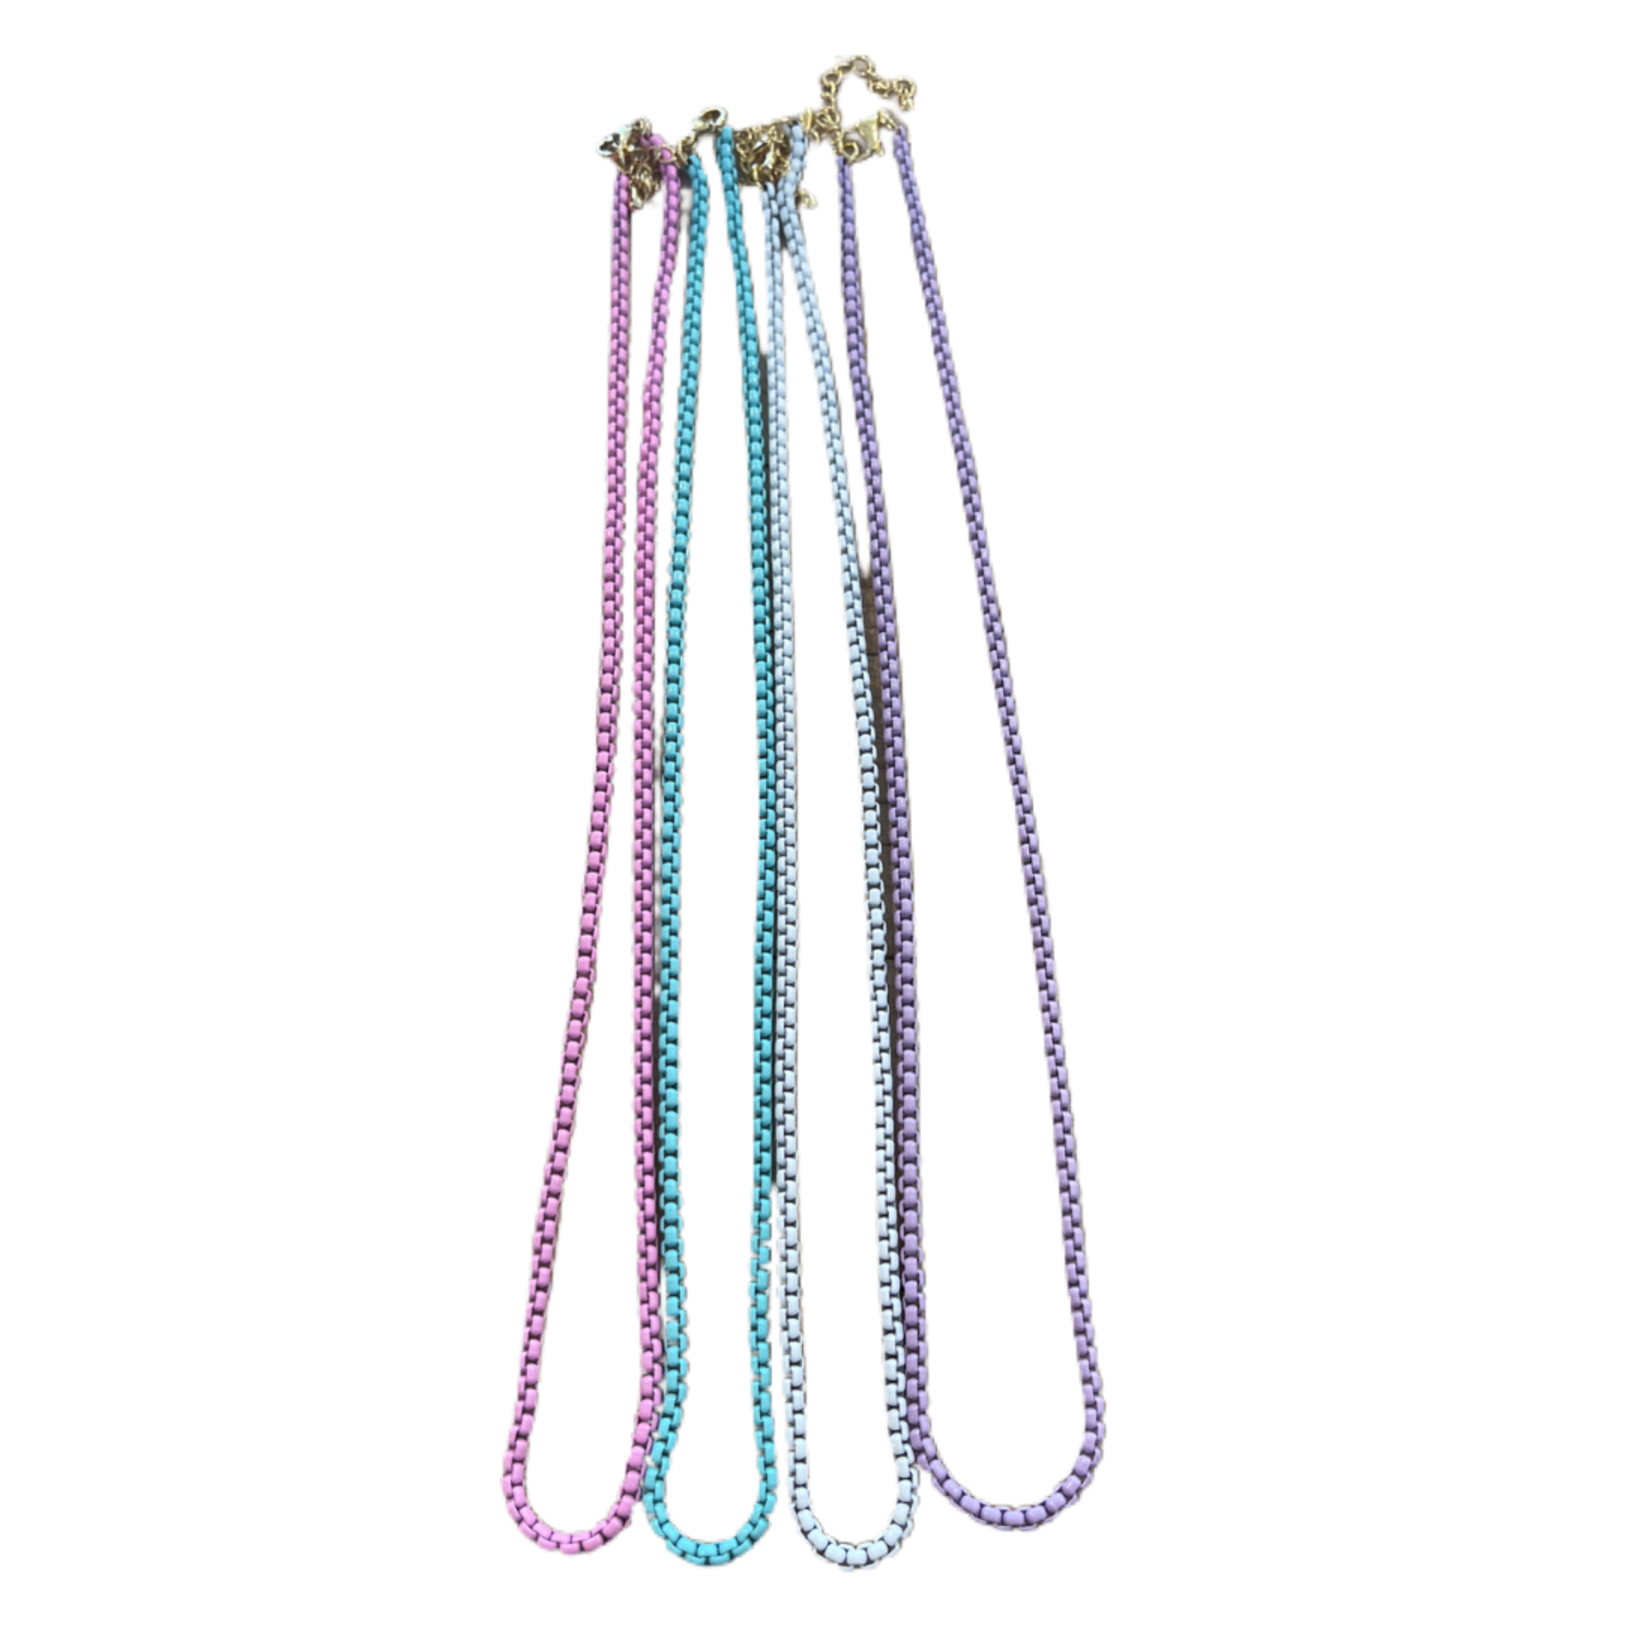 Wyld Blue Pastel Box Chain Necklace